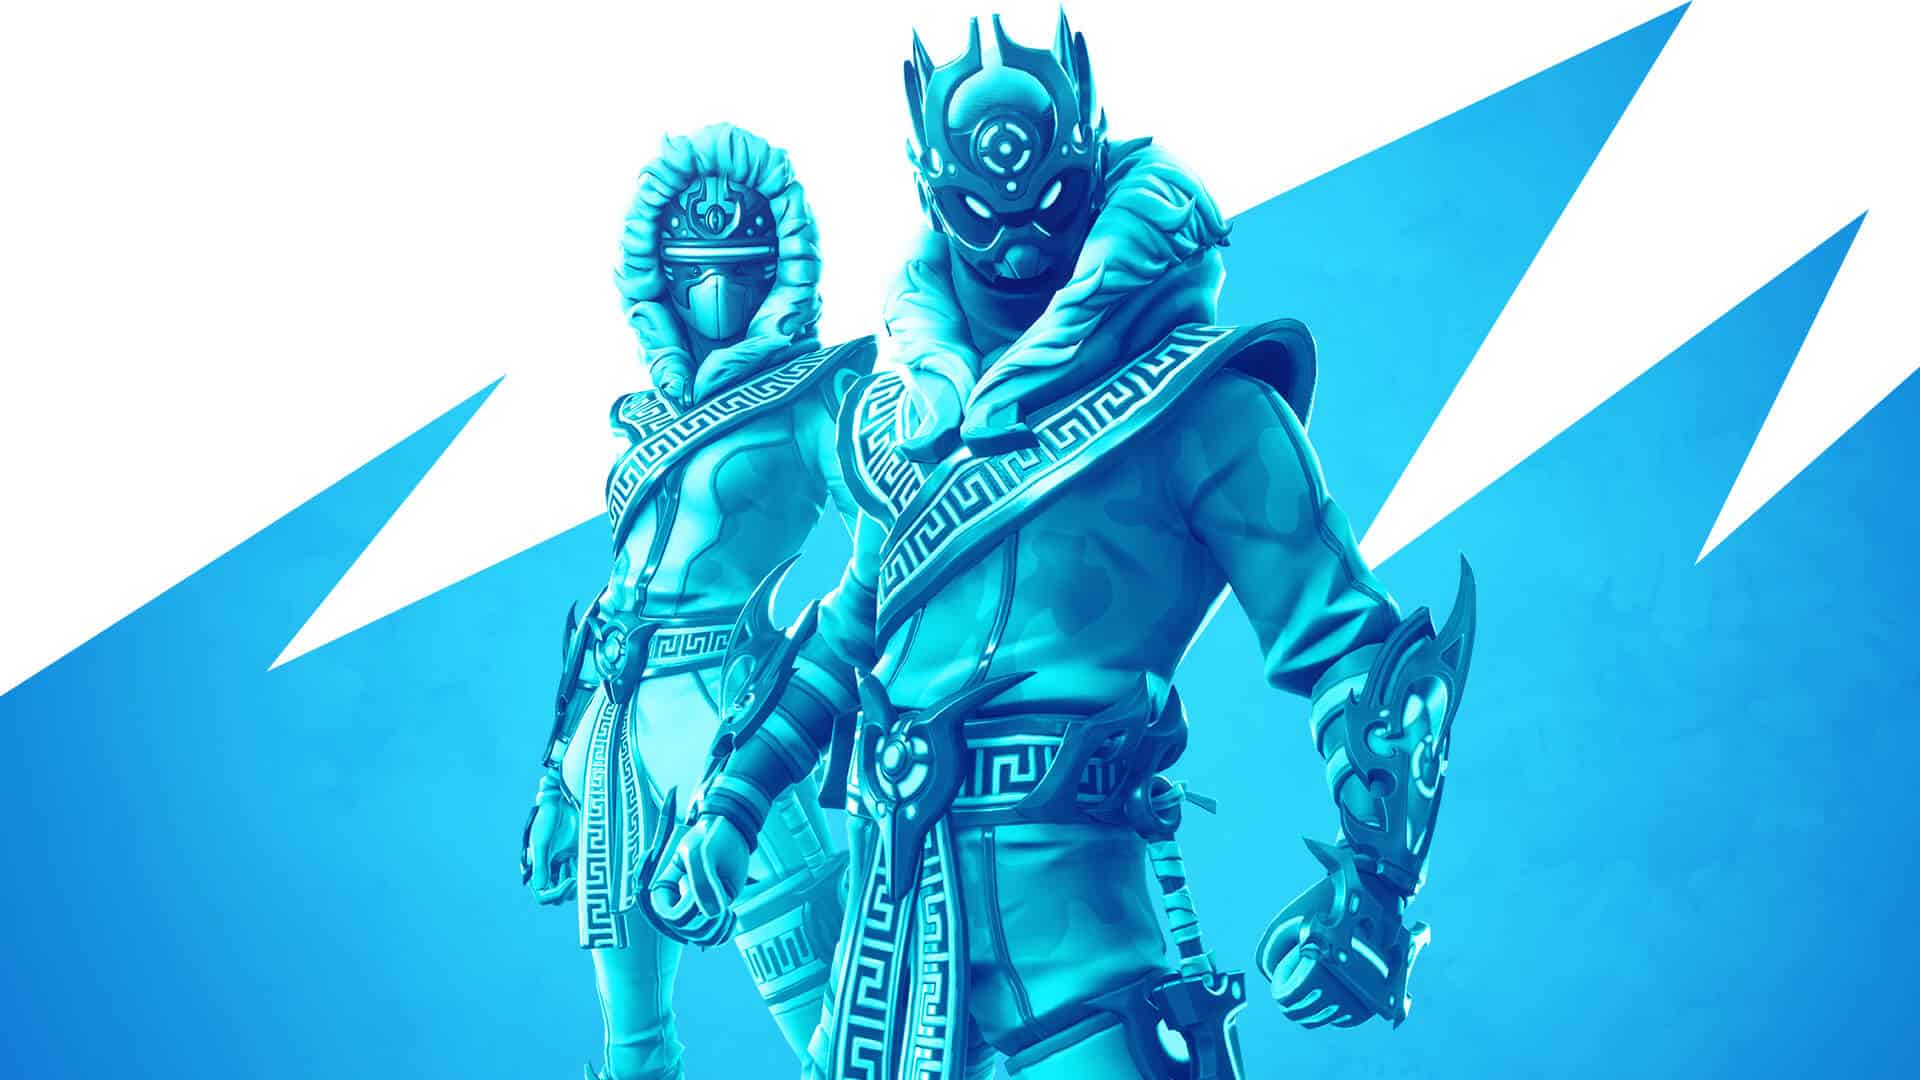 FortniteEsports news winter royale 2019 leaderboards and payments update 11BR WinterRoyale Announce NewsHeader 1920x1080 cbeff2838b1c059645d27708607e16379c9a68a6